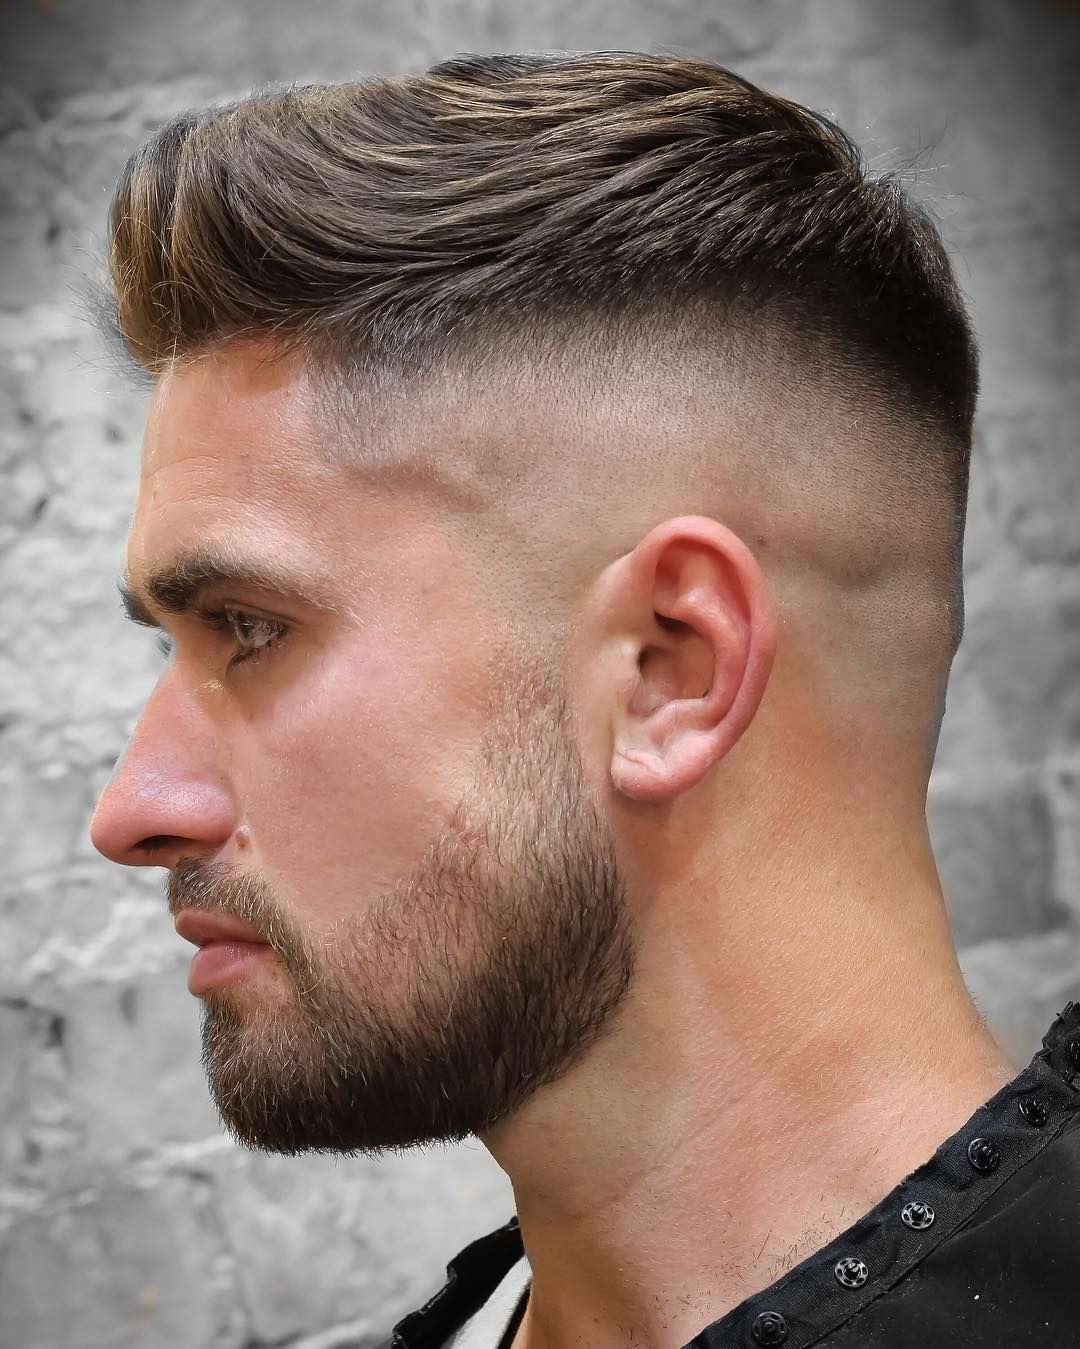 Top 35 Popular Men S Haircuts Hairstyles For Men 2019: Mens Hairstyles 2019